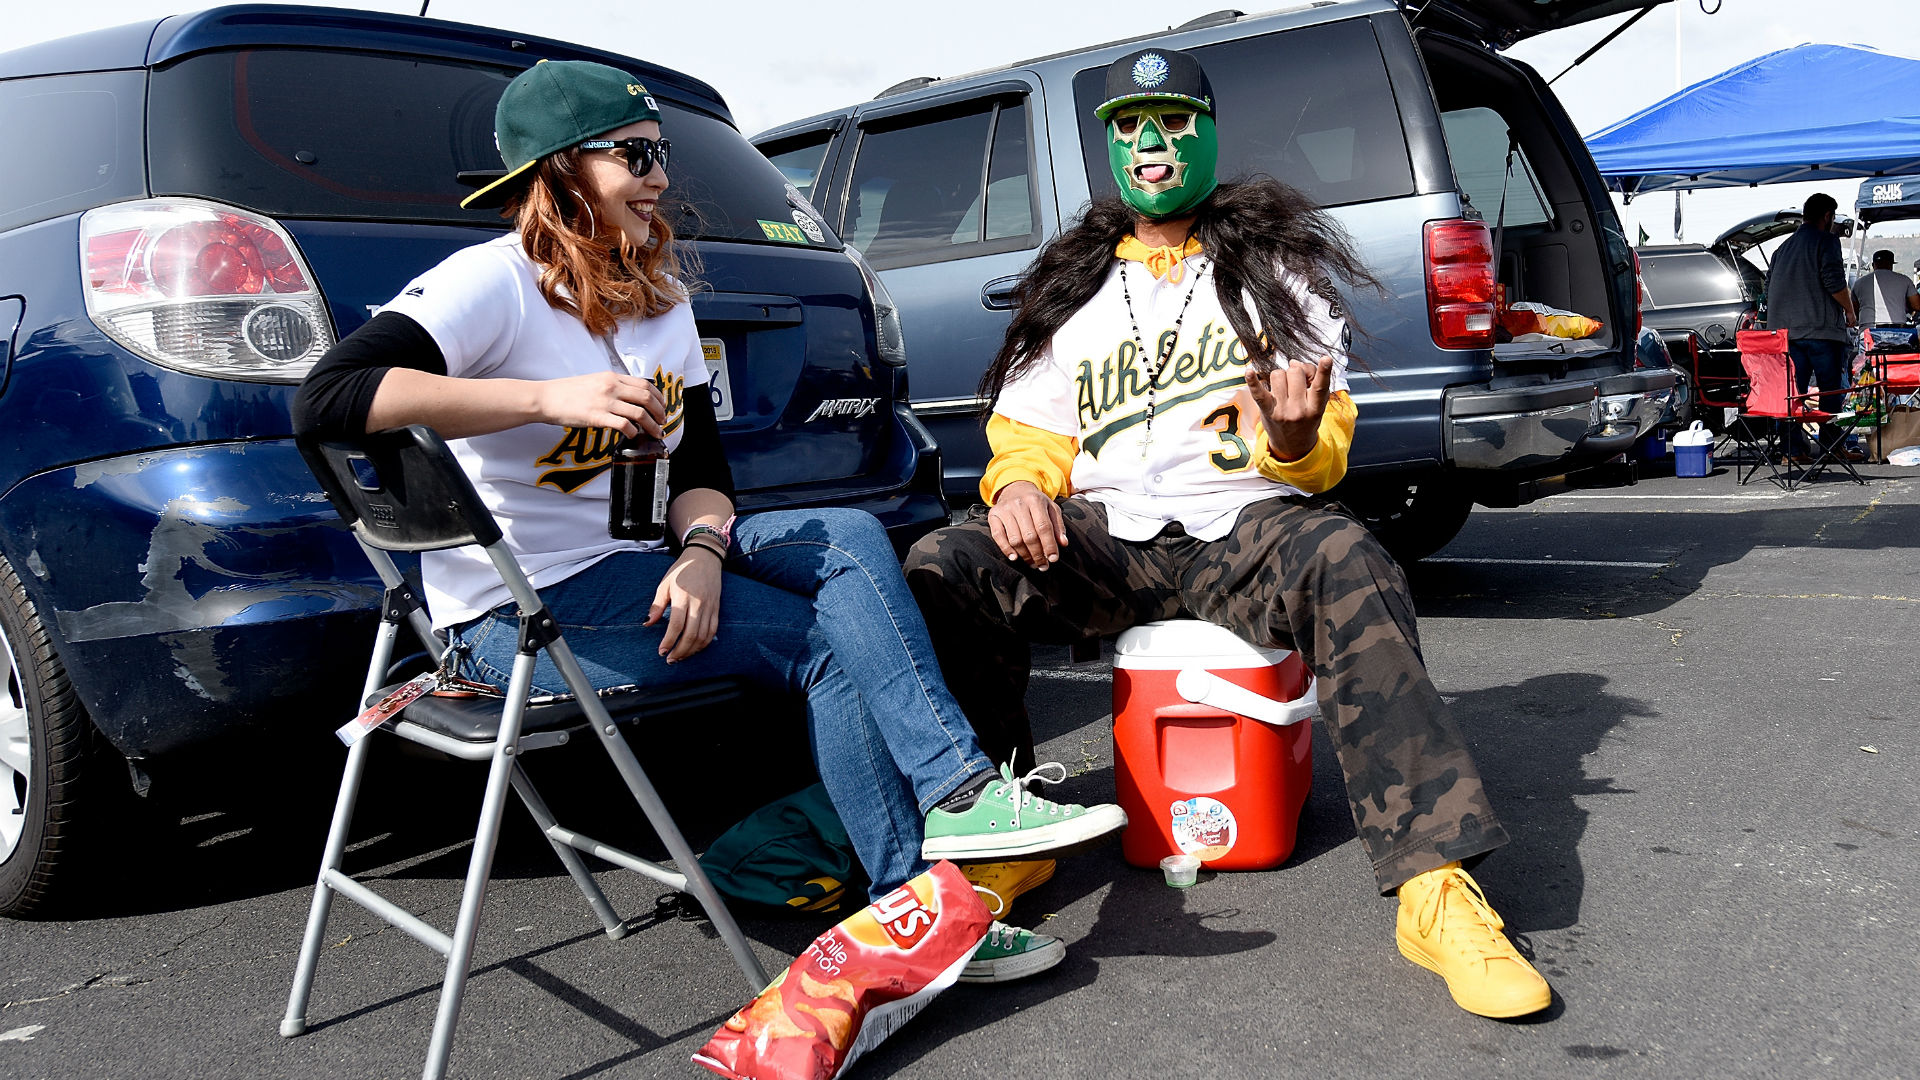 Oakland-as-fans-ftr-getty-050615_1umhxx4zm3jut14f3aq8wstieh